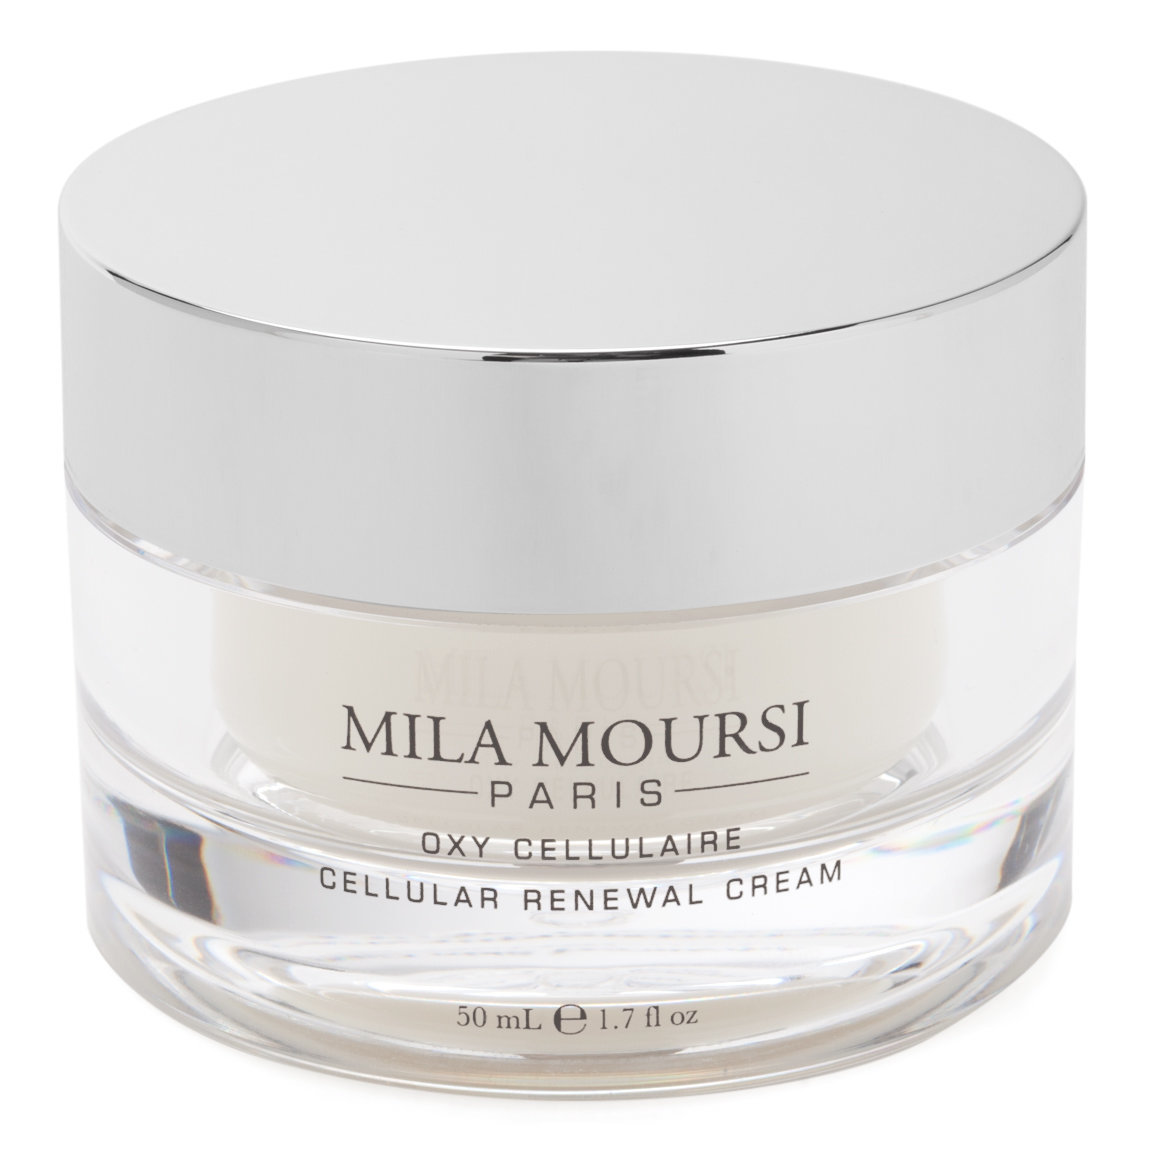 Mila Moursi Oxy Cellular Renewal Cream product swatch.